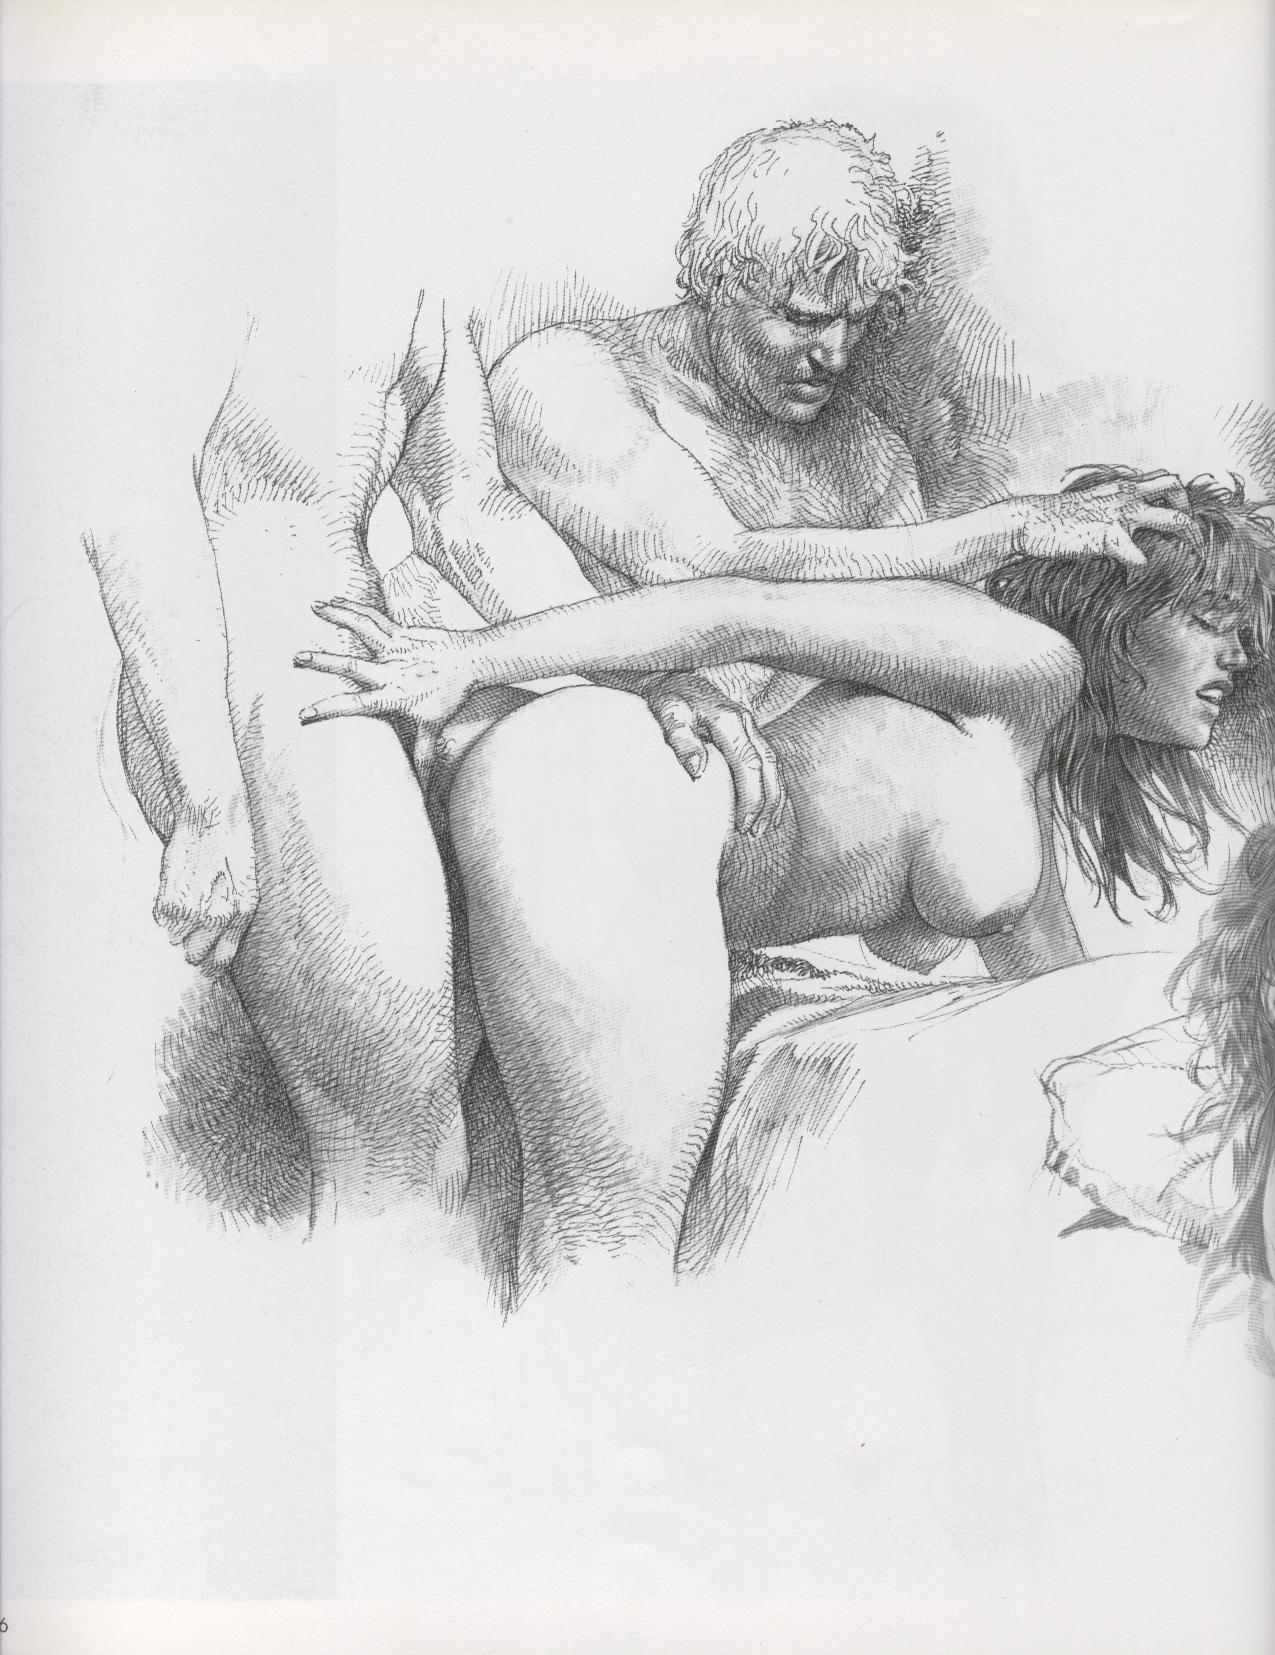 Black and white fantasy sex drawings pornos pic